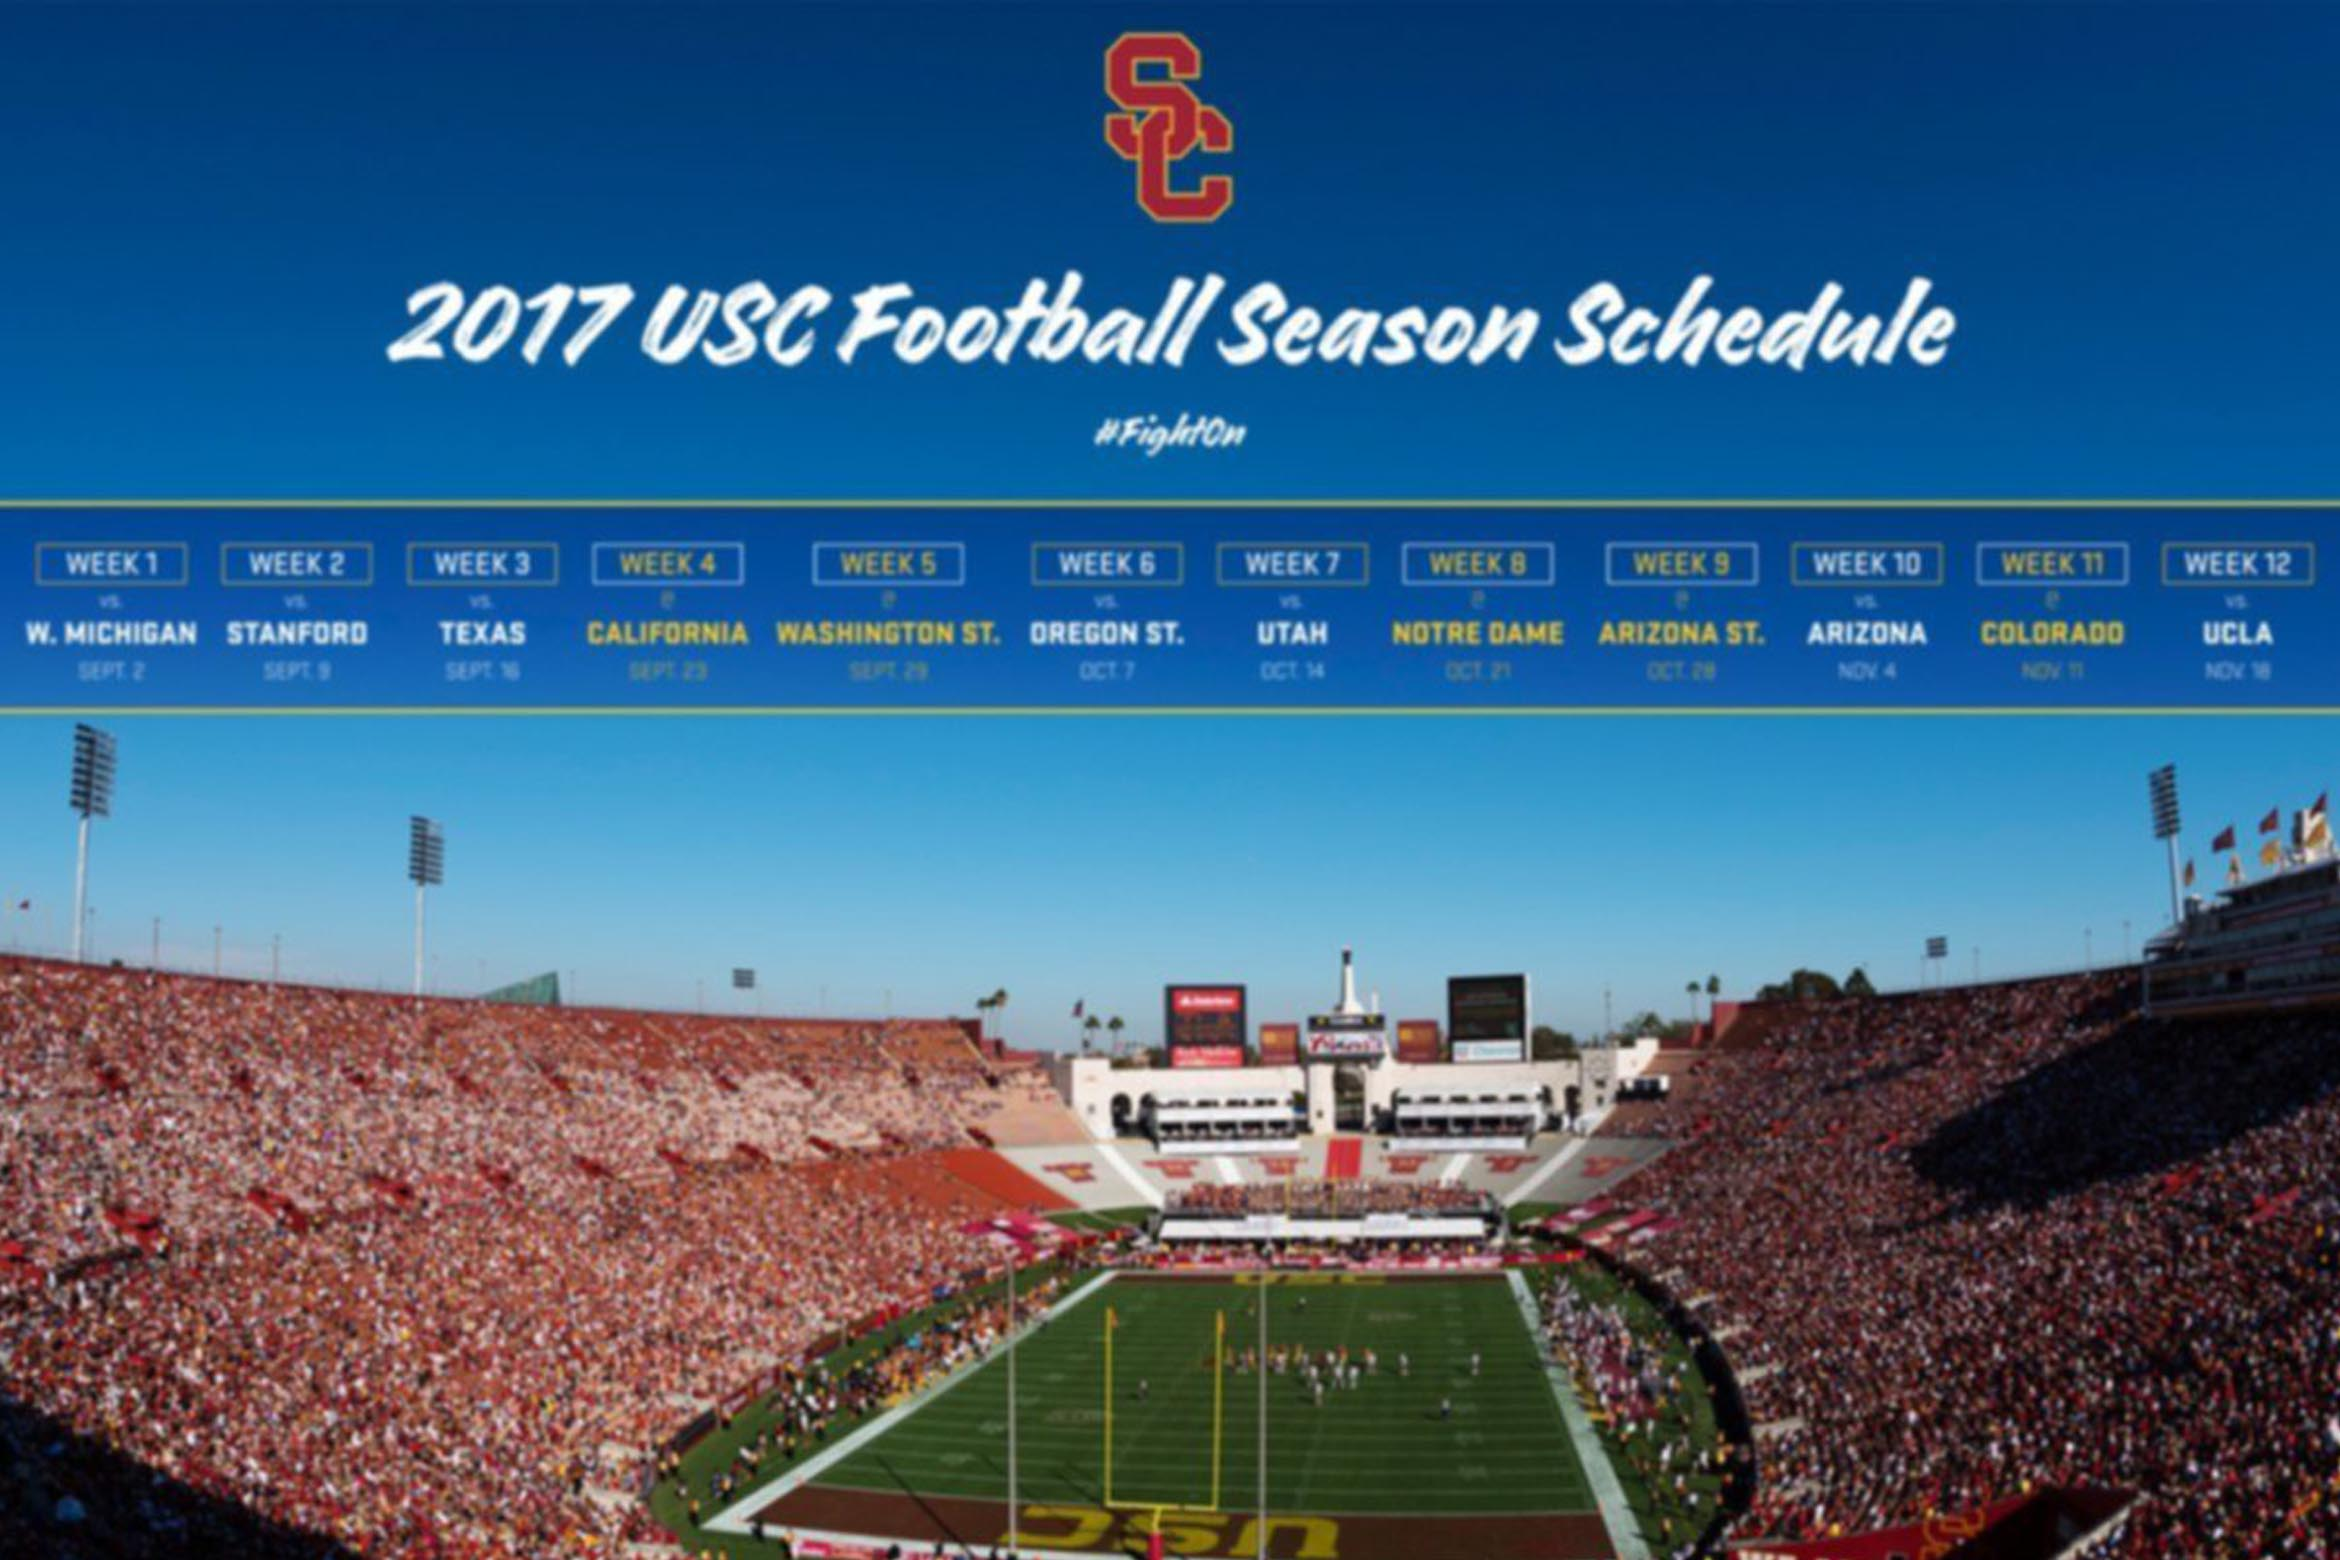 usc announces 2017 football schedule – los angeles coliseum